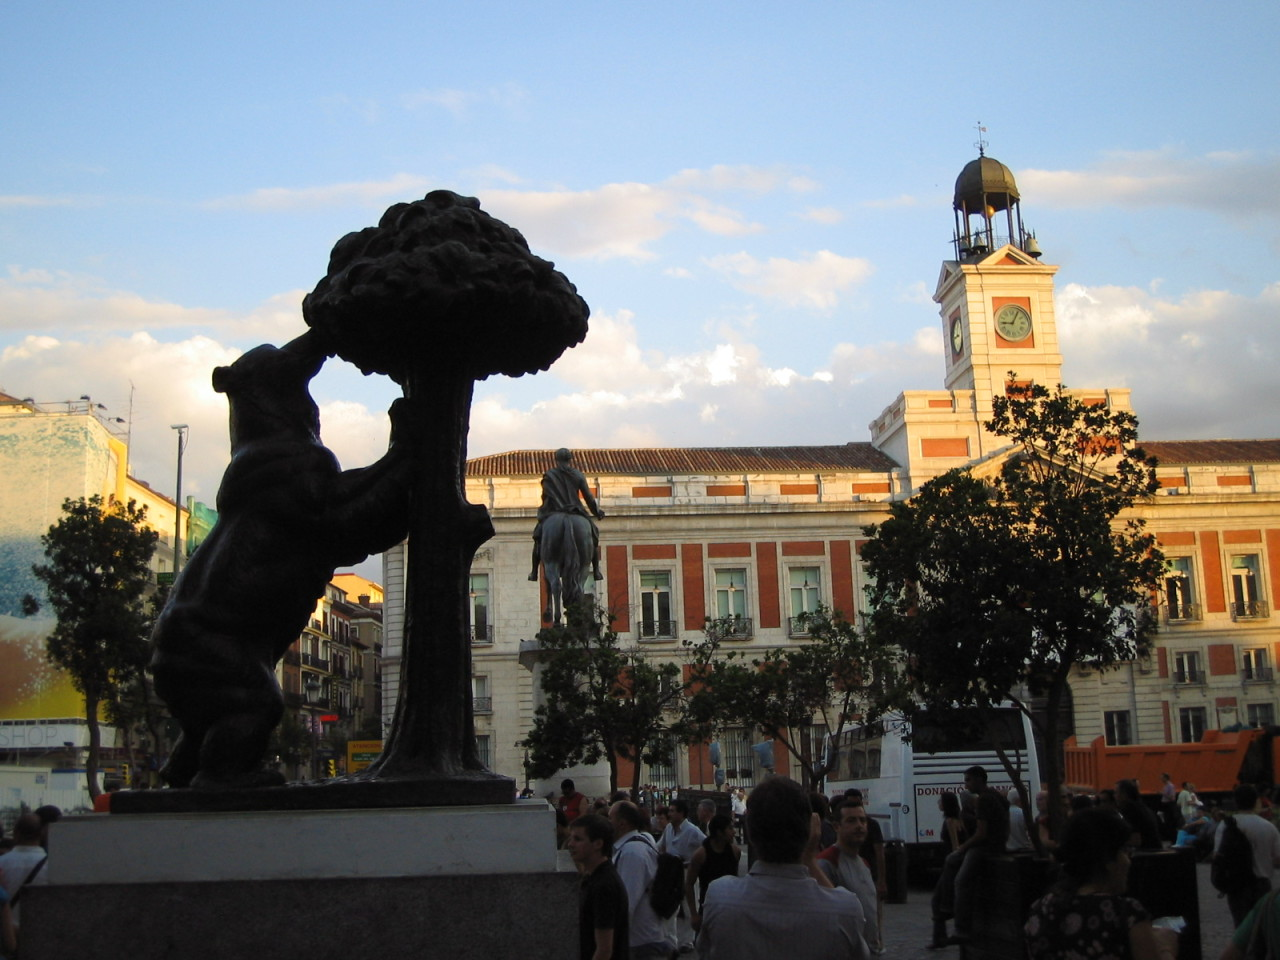 Spanish Iphone Apps: Taplingua - Cultural Bite: Madrid's Puerta del Sol ¡Hola! If you are planning to travel to Spain or Latin America this Spring or Summer, or even…View Post